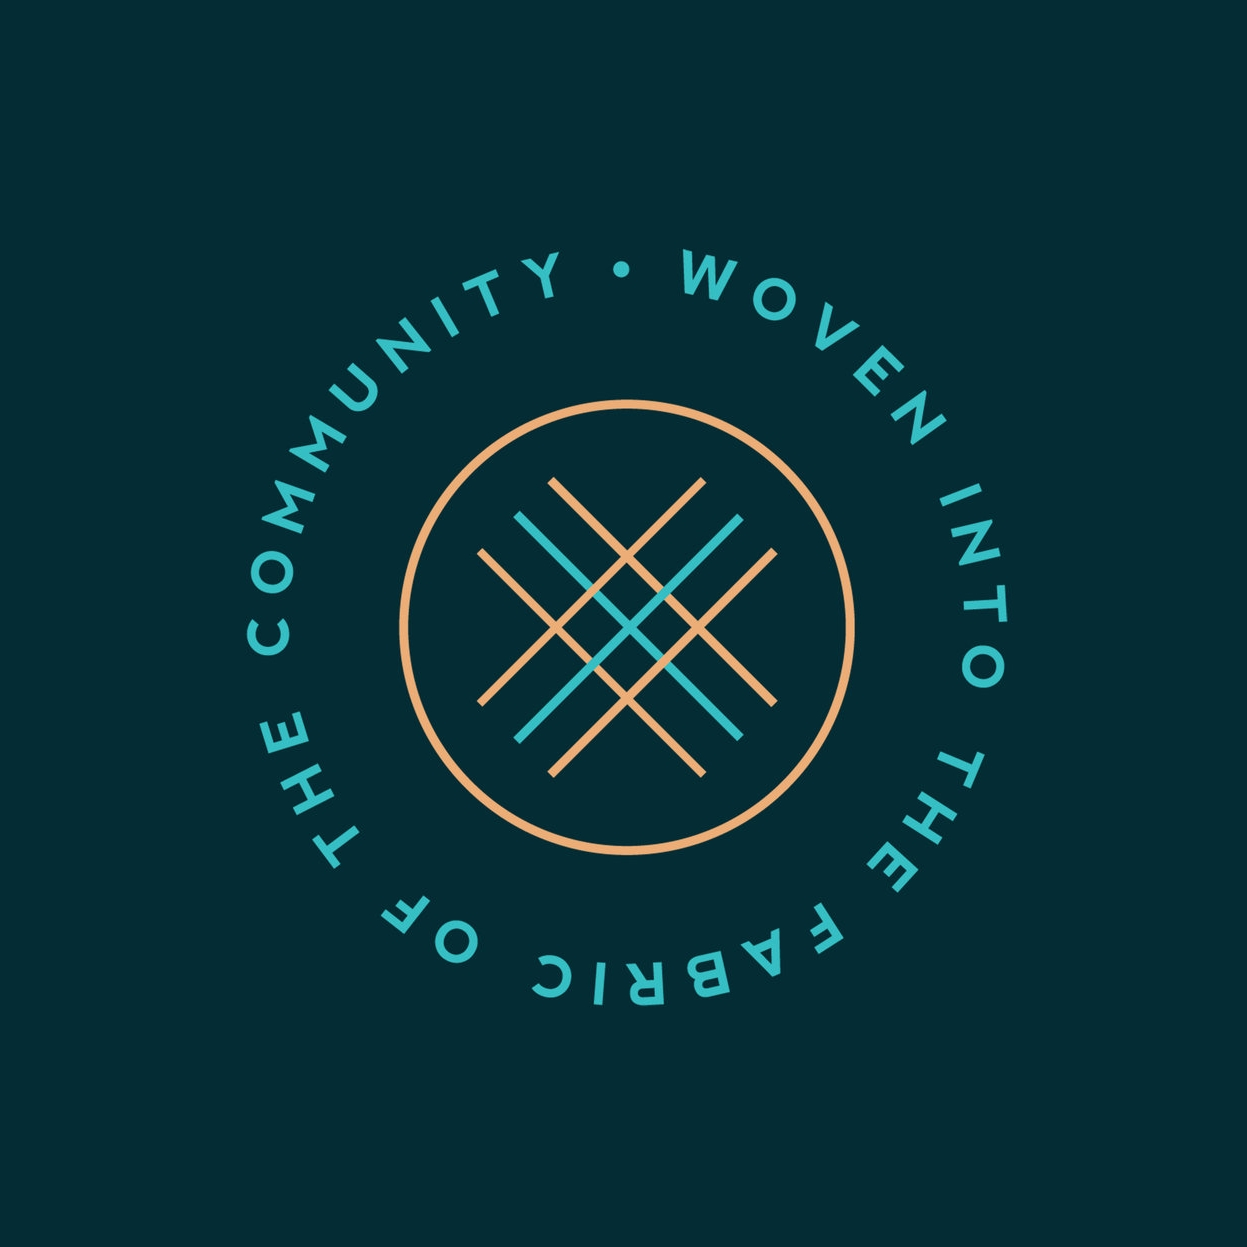 We are a community woven together in Christ with an active commitment to serve the neighborhoods we live in. -